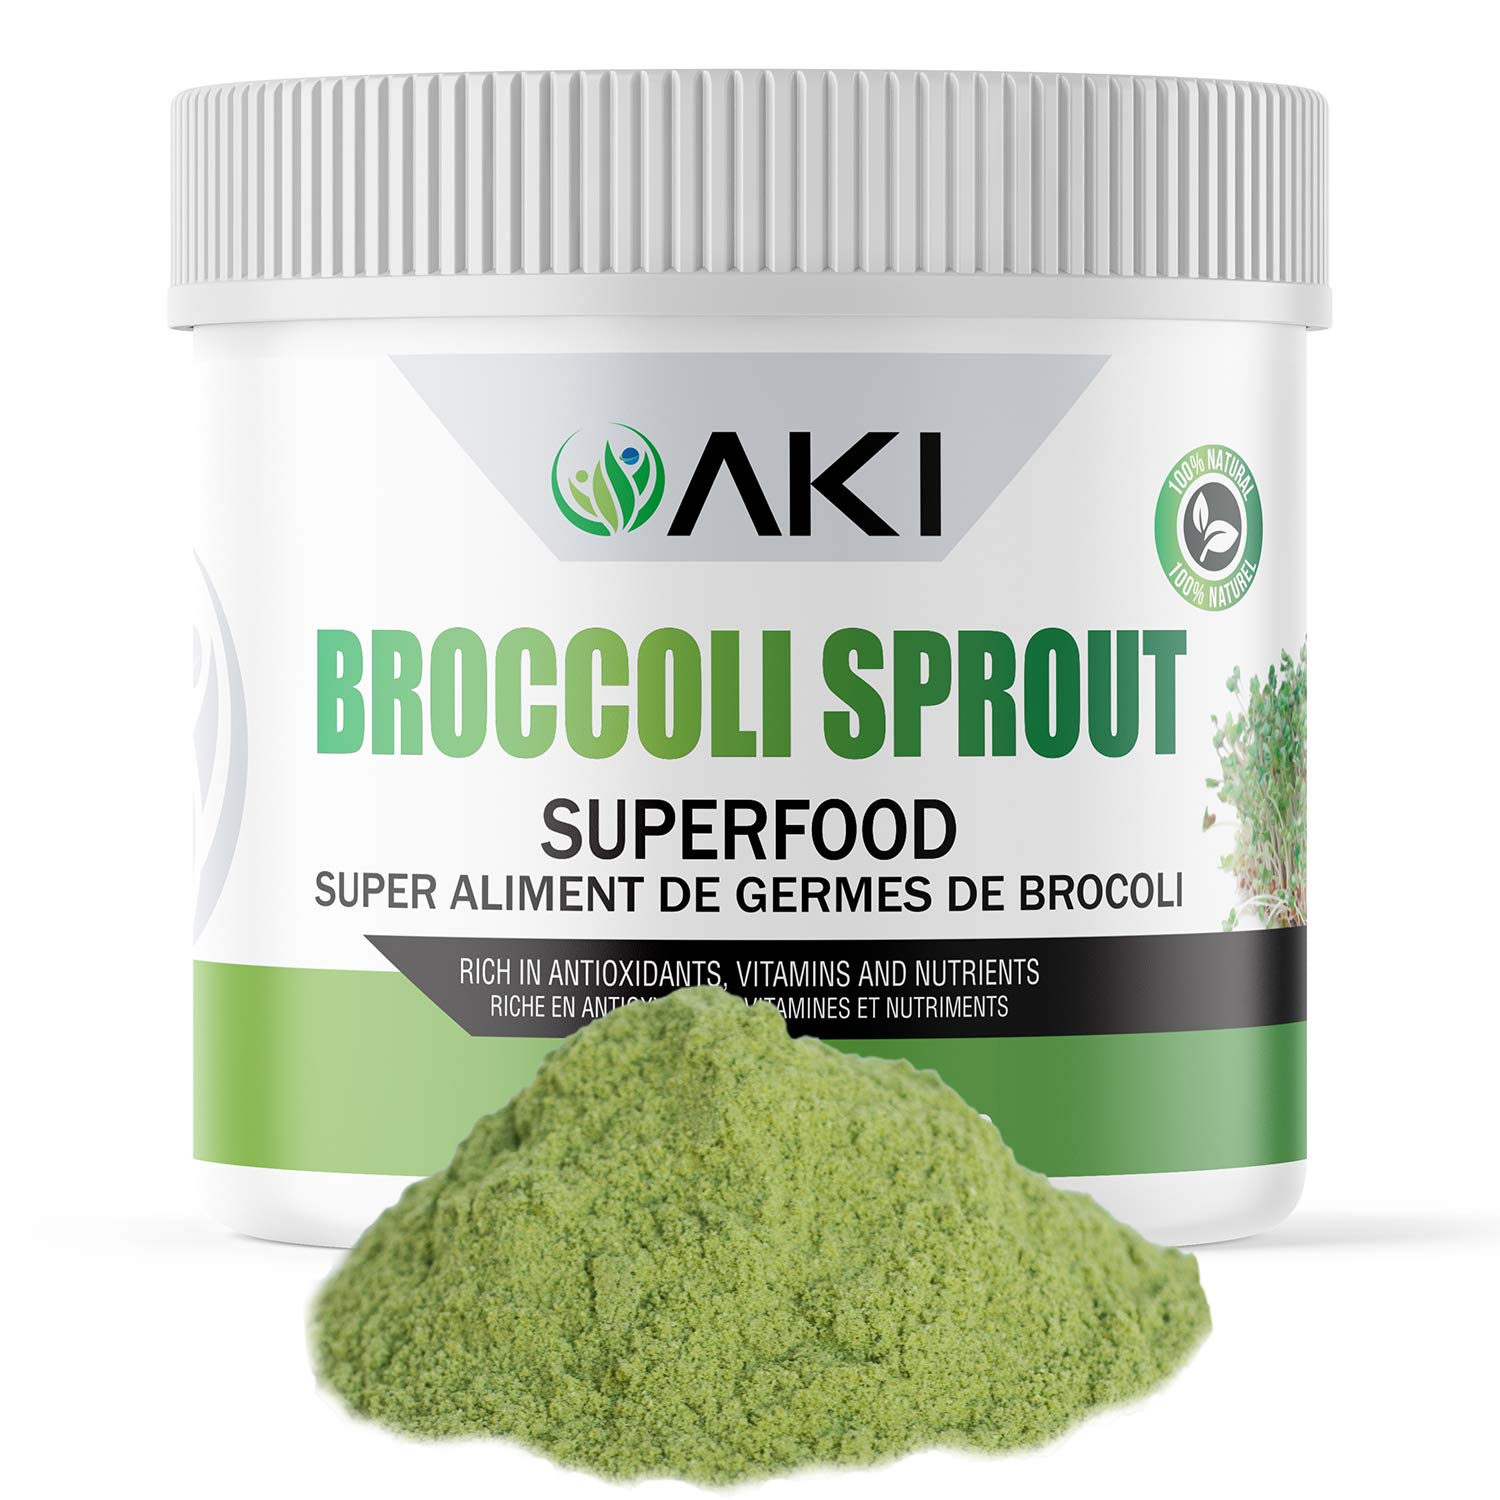 Aki Natural Broccoli Sprout Powder Sulforaphane Ideal For Your Greens Veggie Smoothie Or As A Supplements Of Sprouts From Non Gmo Brocolli Seeds Pack Of Vitamins & Antioxidant (5.29oz / 150g)